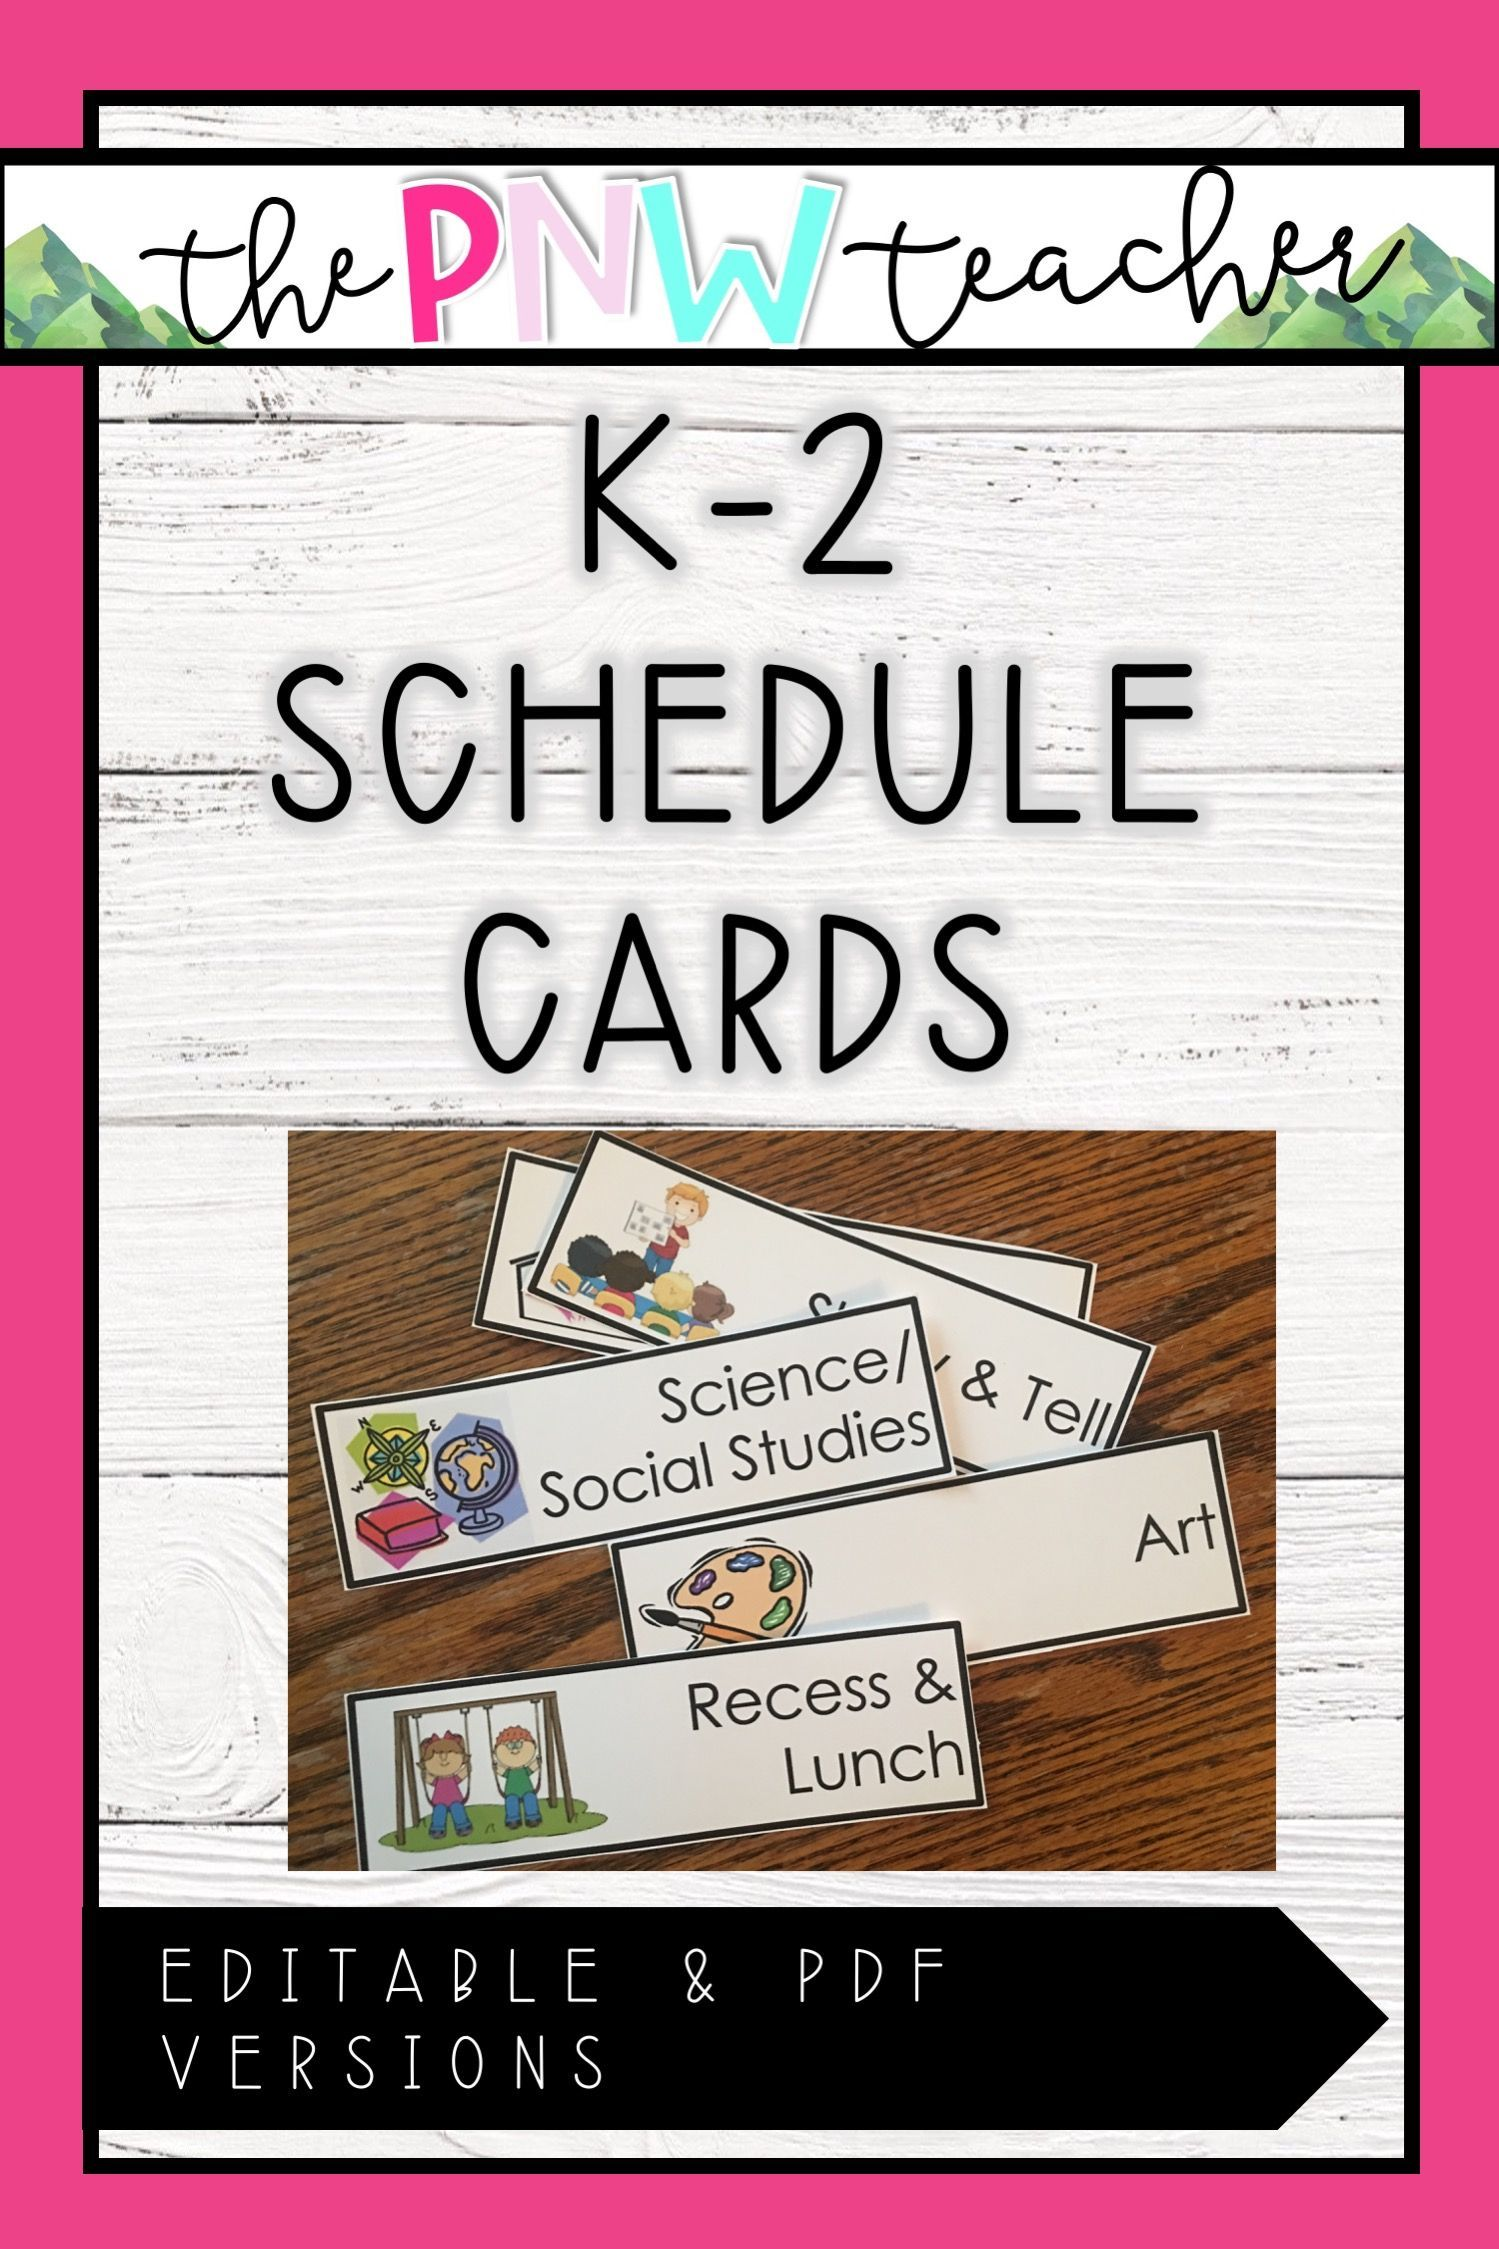 K2 schedule cards in 2020 schedule cards camping theme